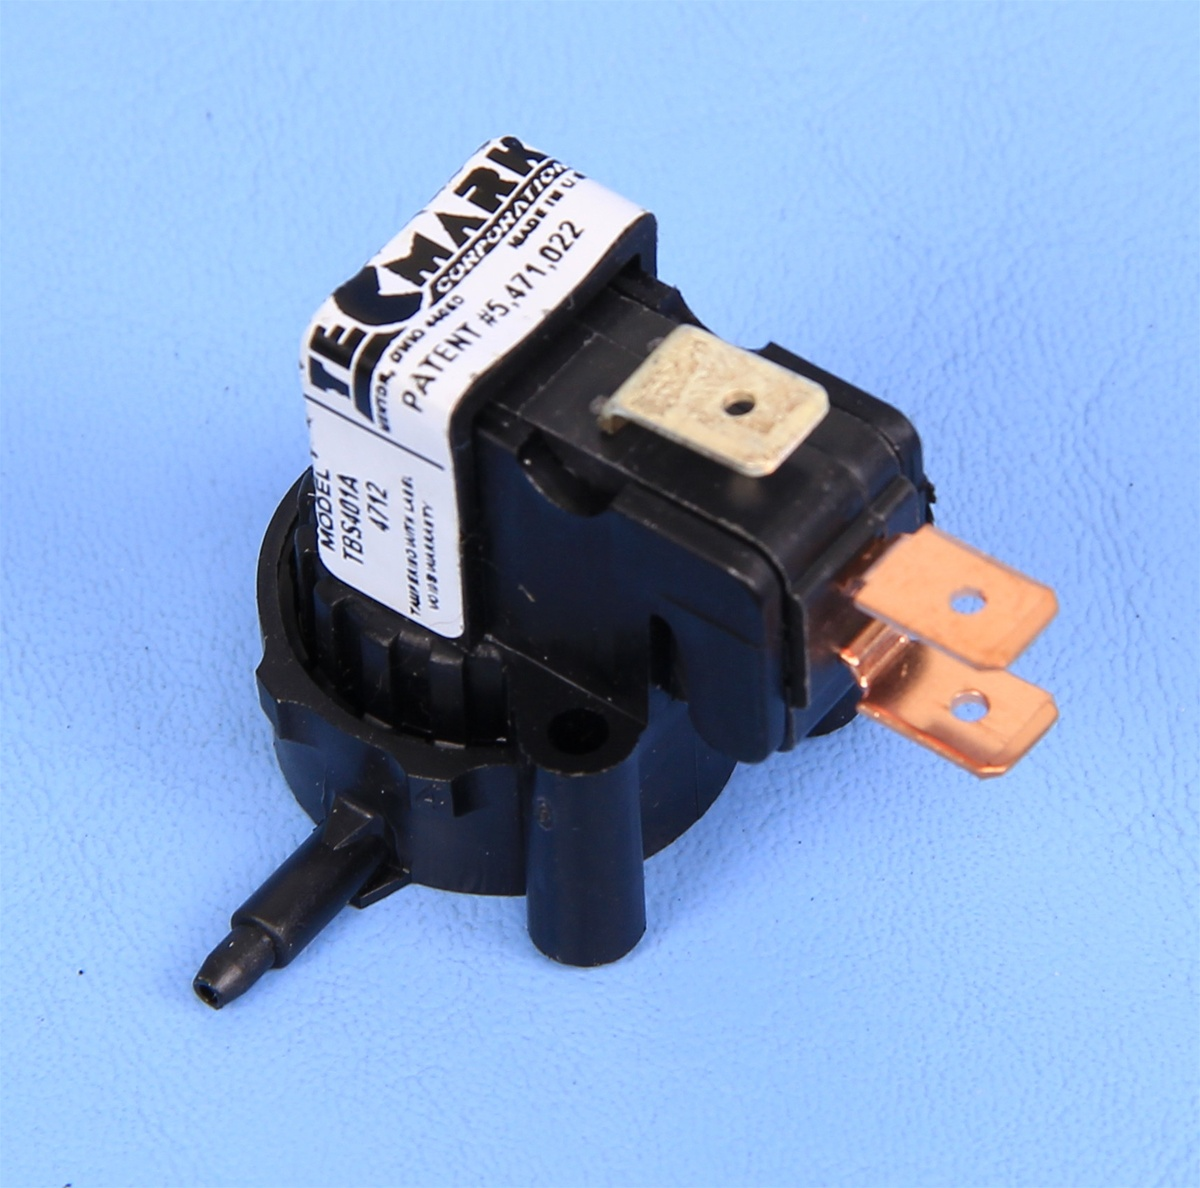 Air Toggle Switch : Air switch side spout airswitch afo u tecmark